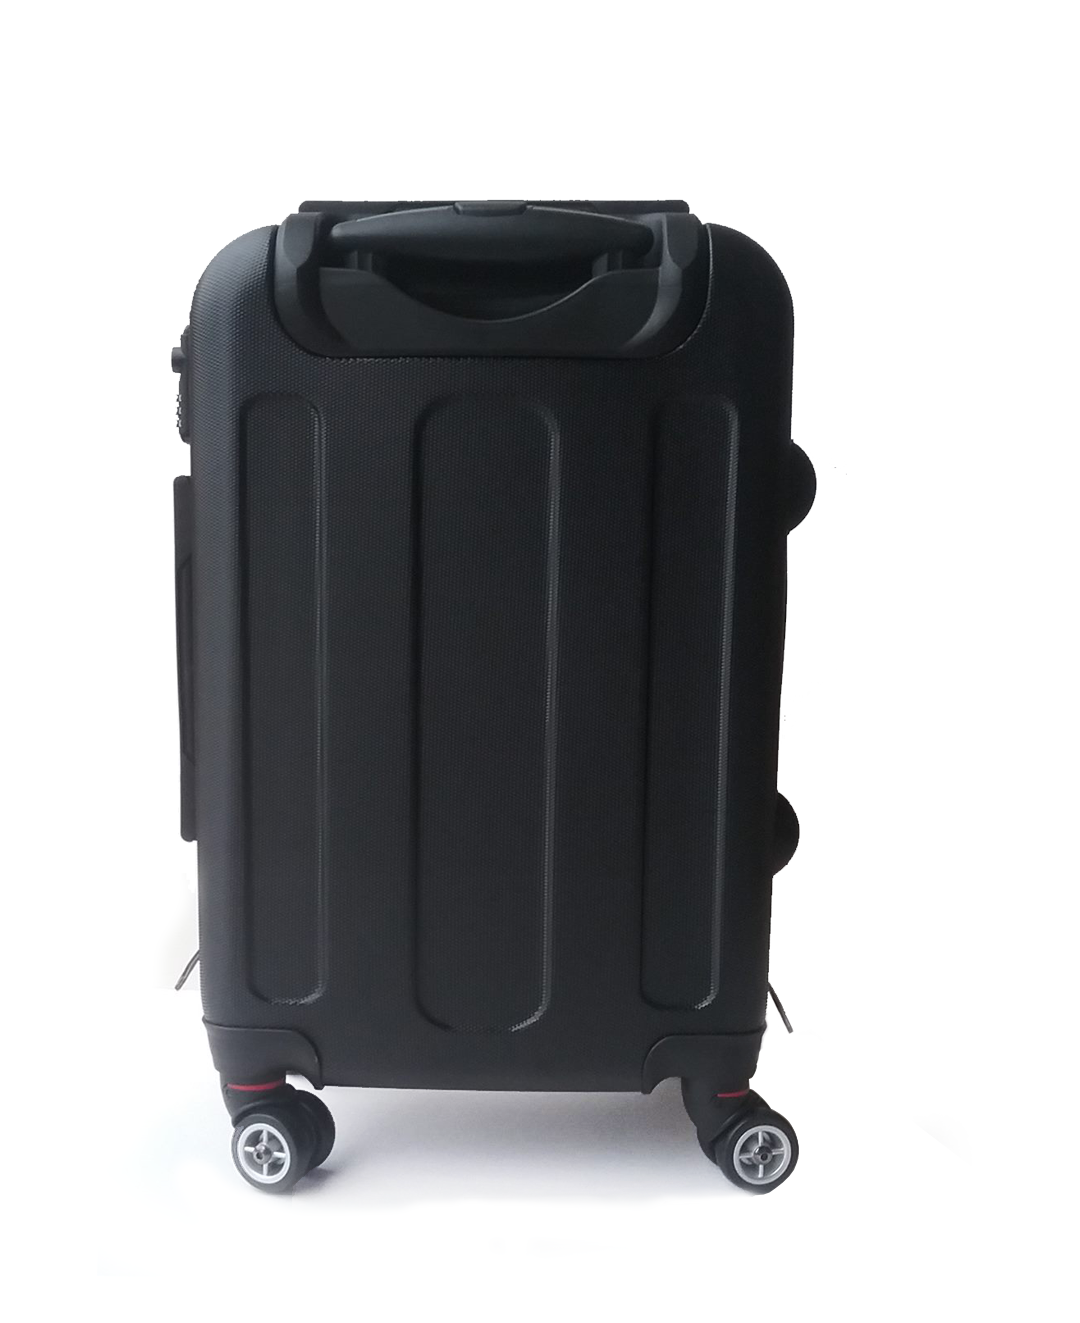 1e25a0ec95 HB LONDON - The ORIGINAL Personalised Initial Suitcases